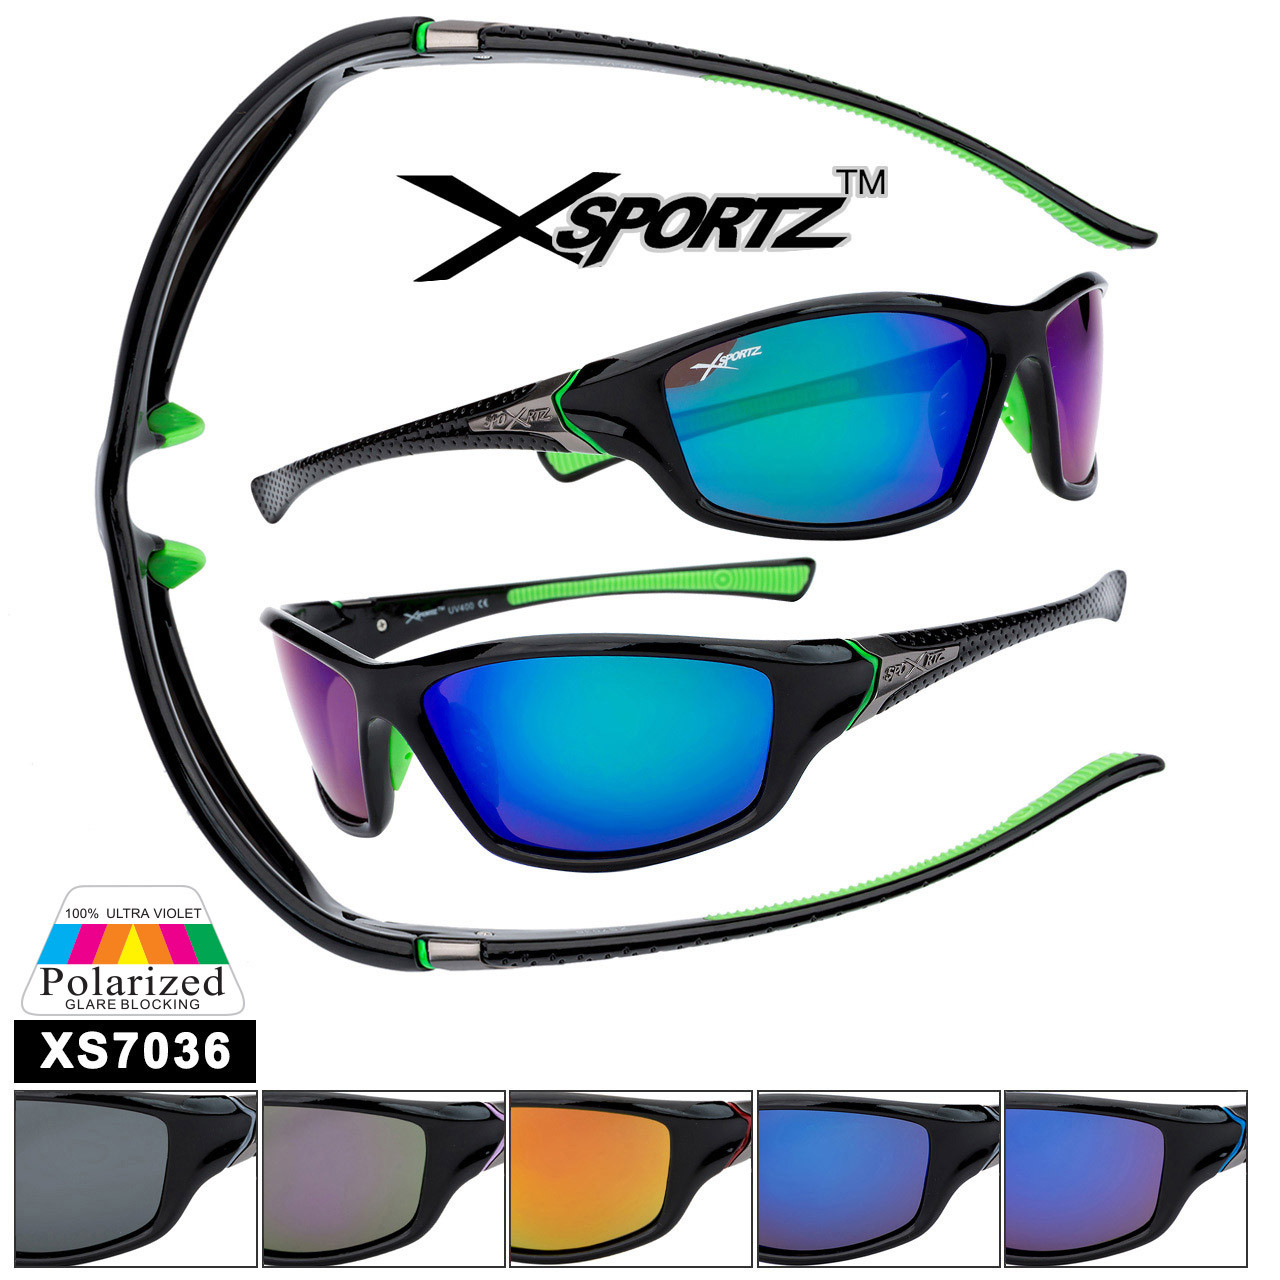 Bulk Polarized Xsportz™ Sports Sunglasses XS7036